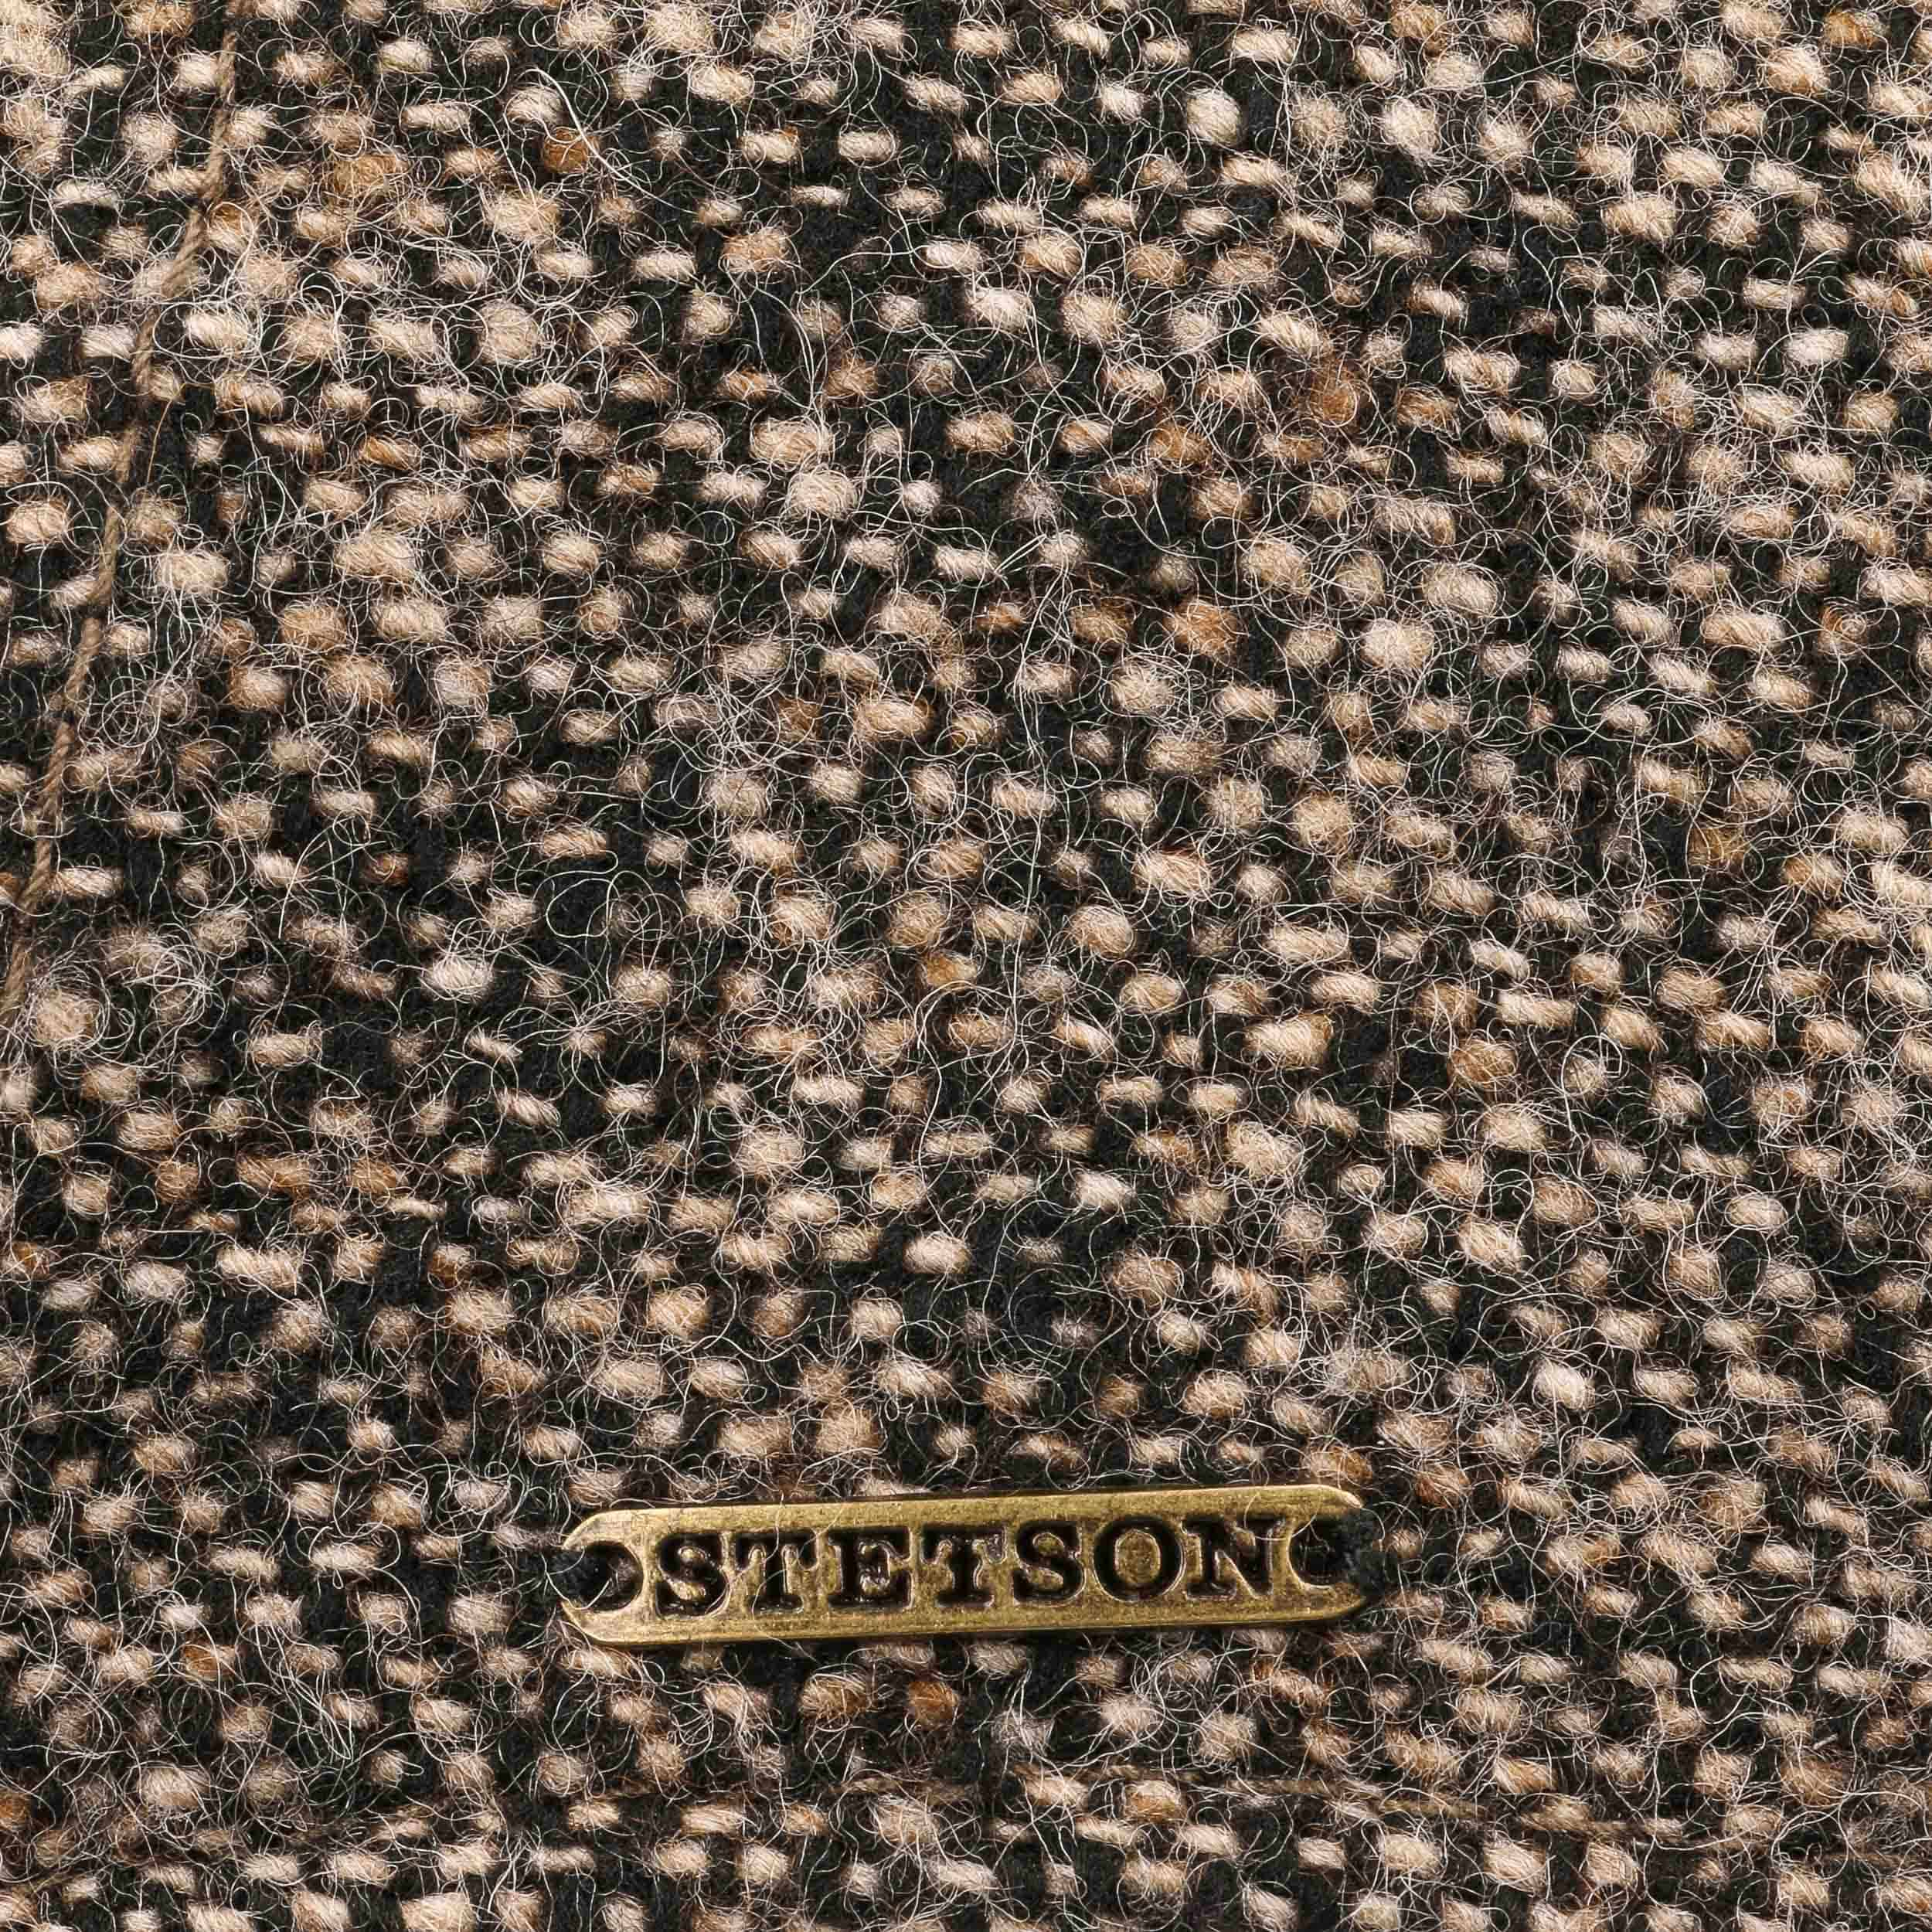 909d9d288f2 ... Campbell Virgin Wool Cap by Stetson - brown 3 ...